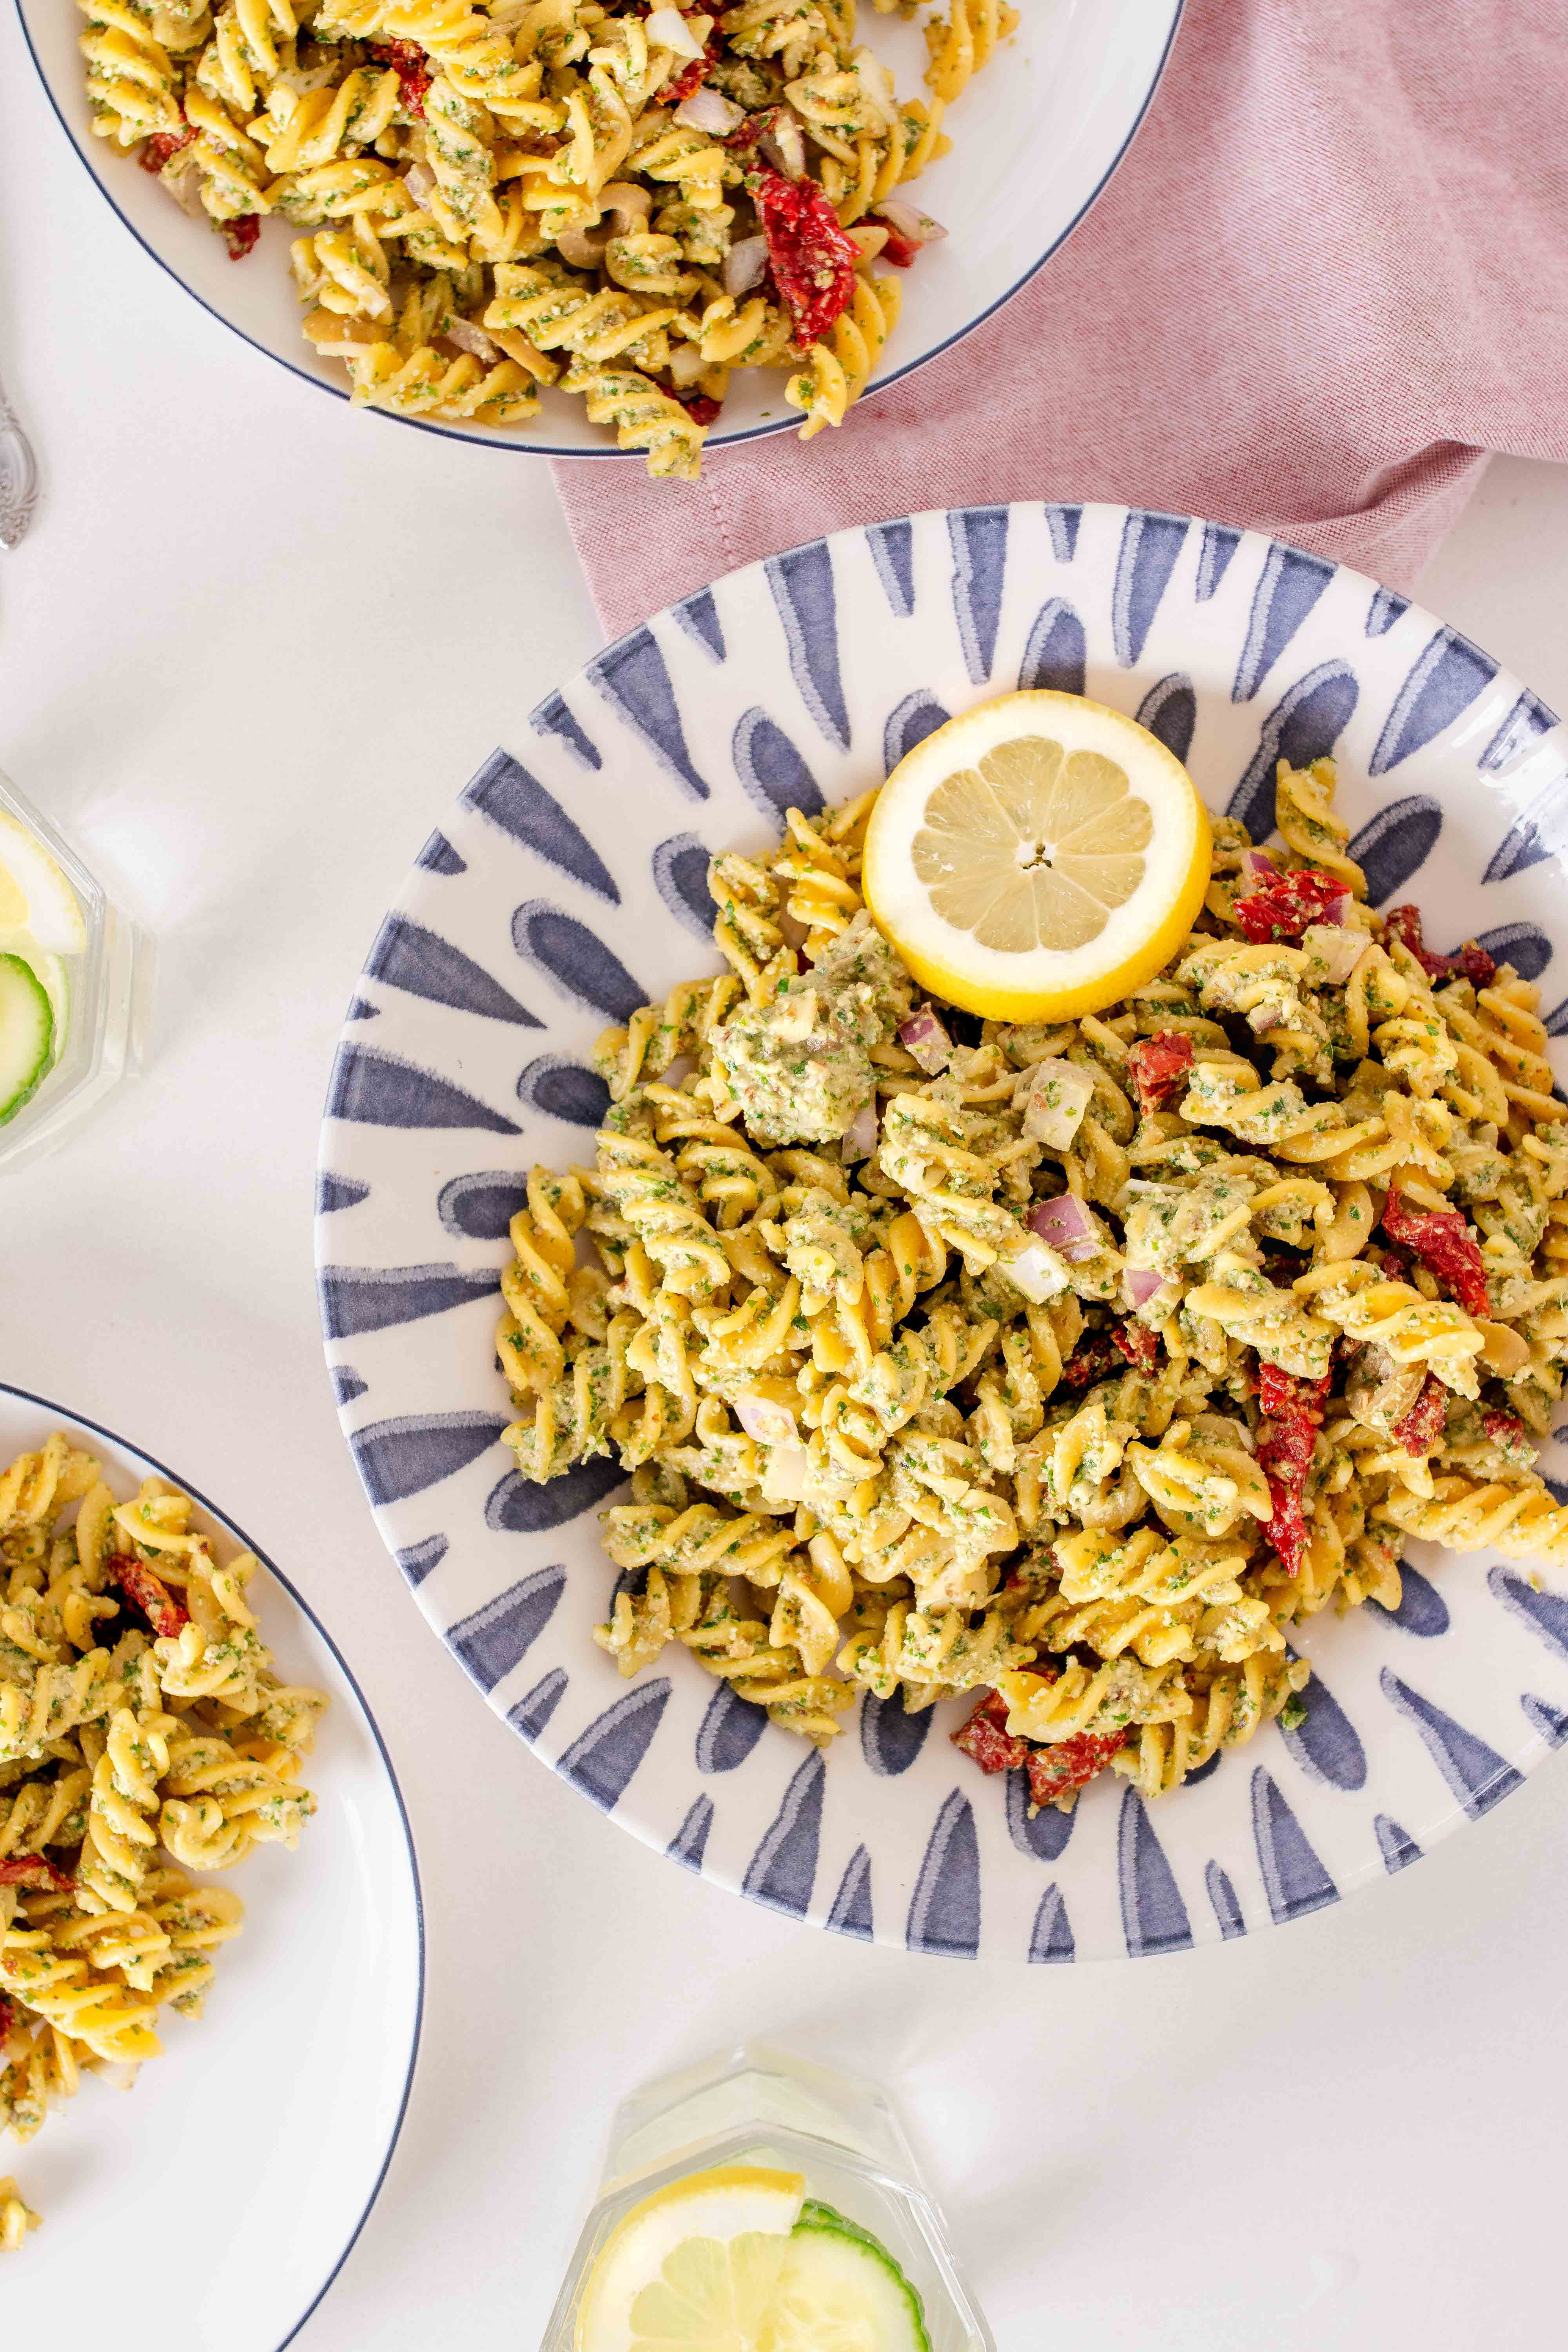 fusilli pasta with pesto, olives, red onion and sundried tomatoes